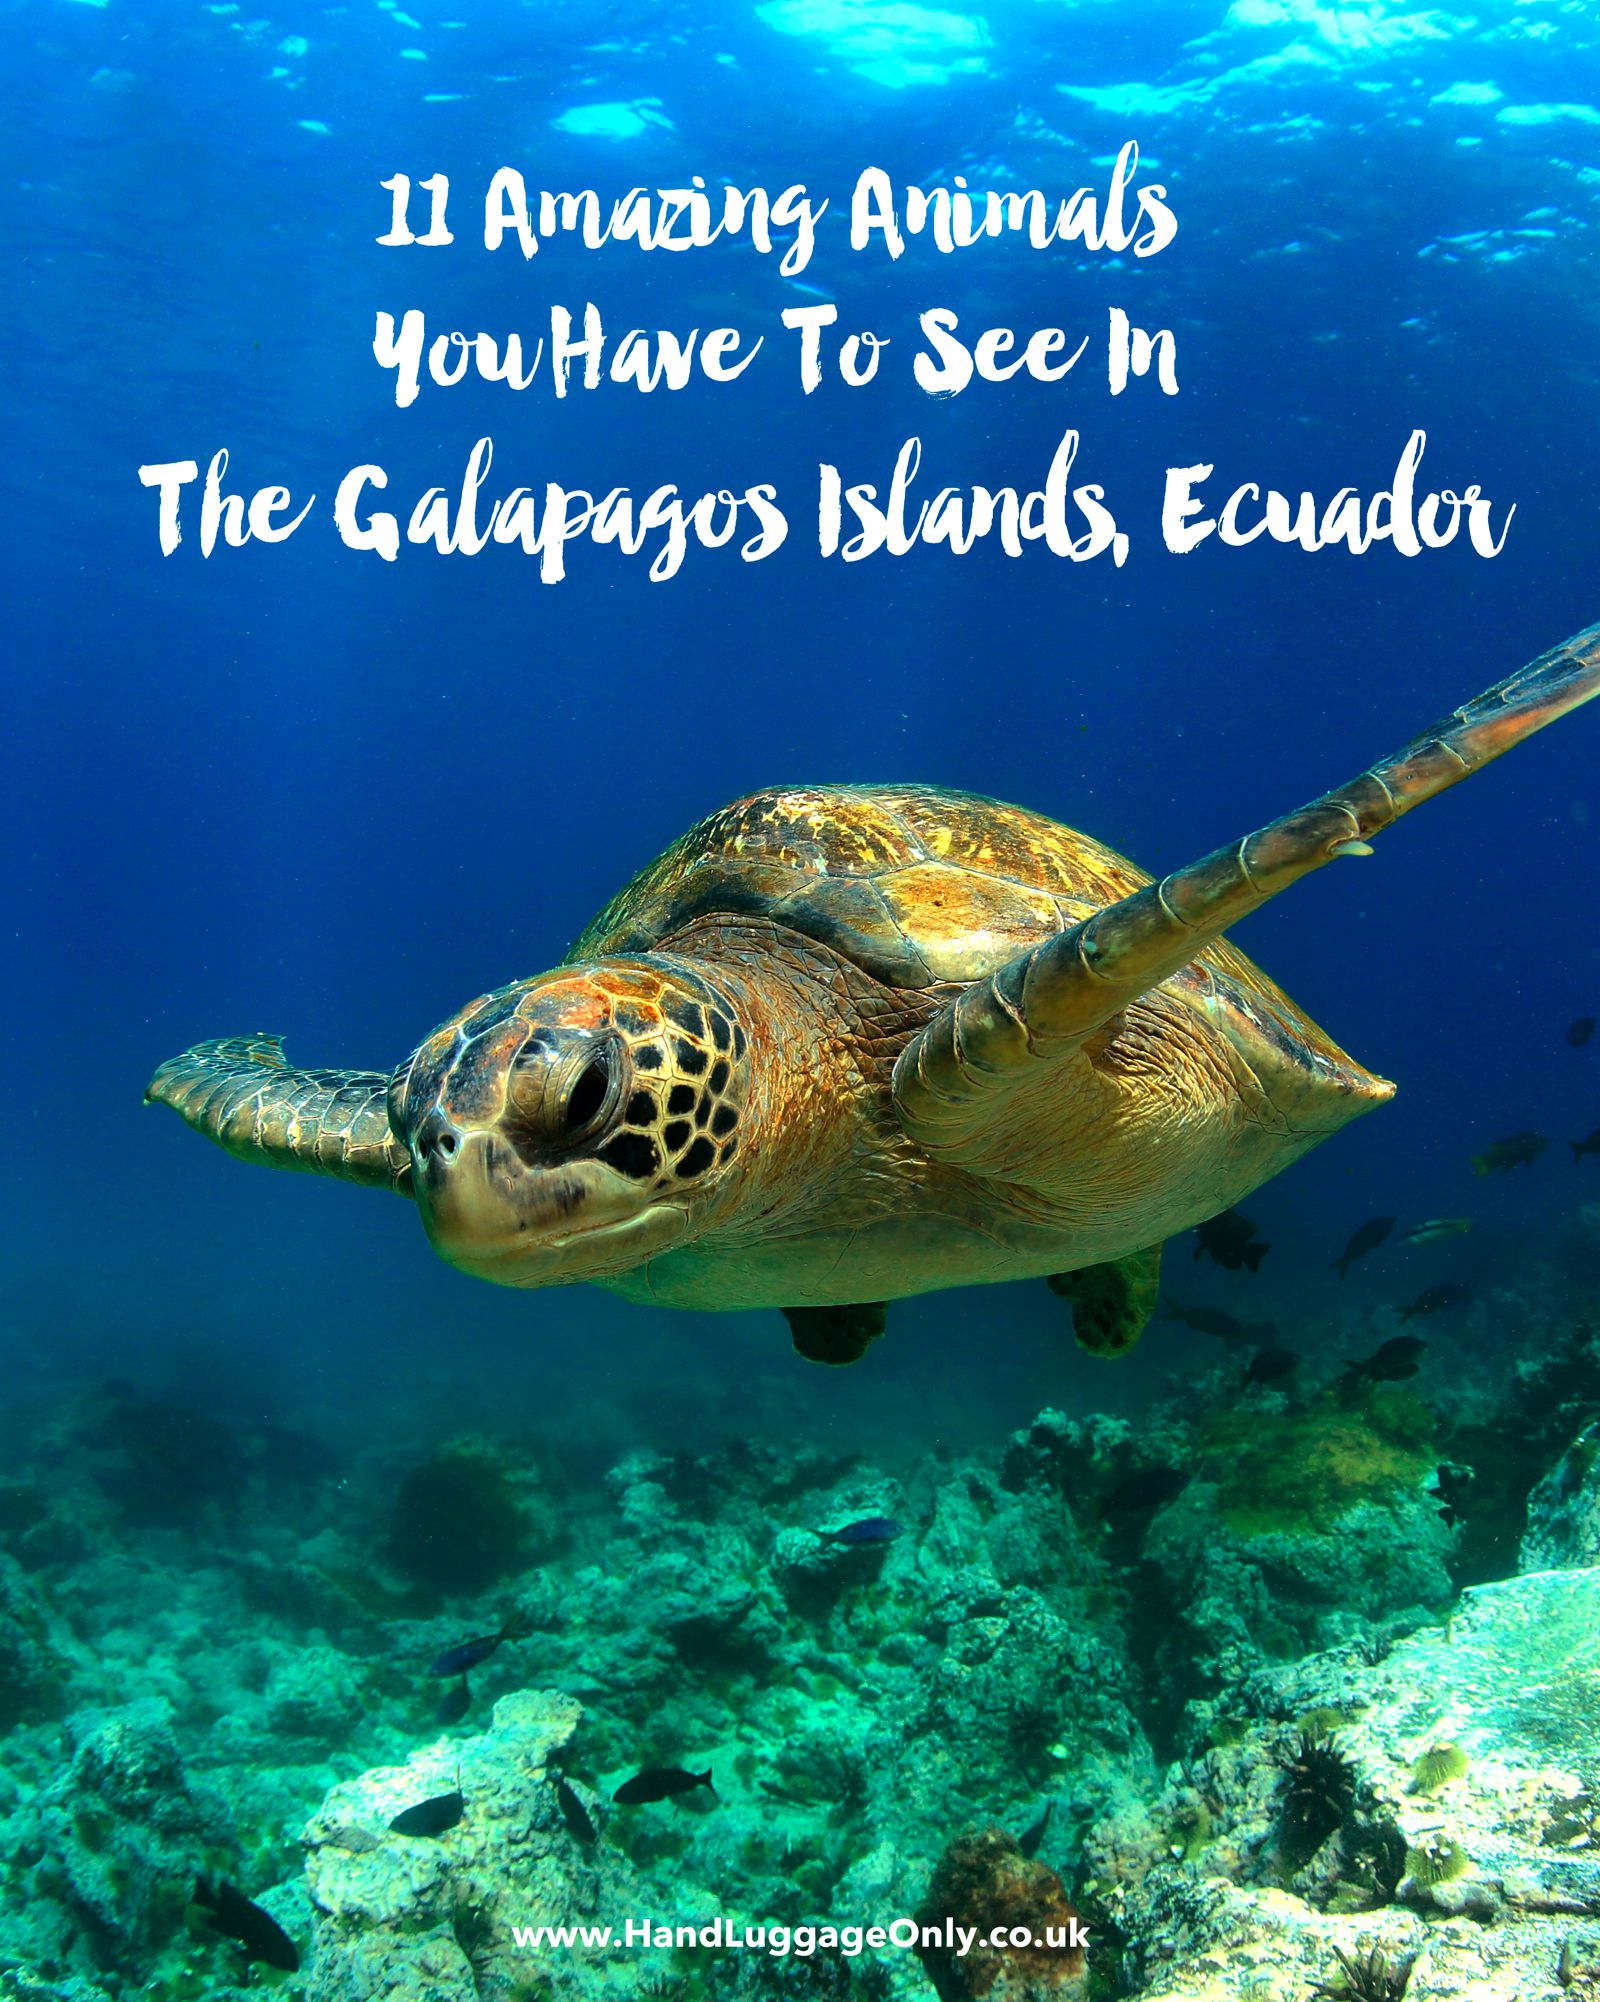 11 Amazing And Unique Animals You Have To See In The Galapagos Islands, Ecuador (1)